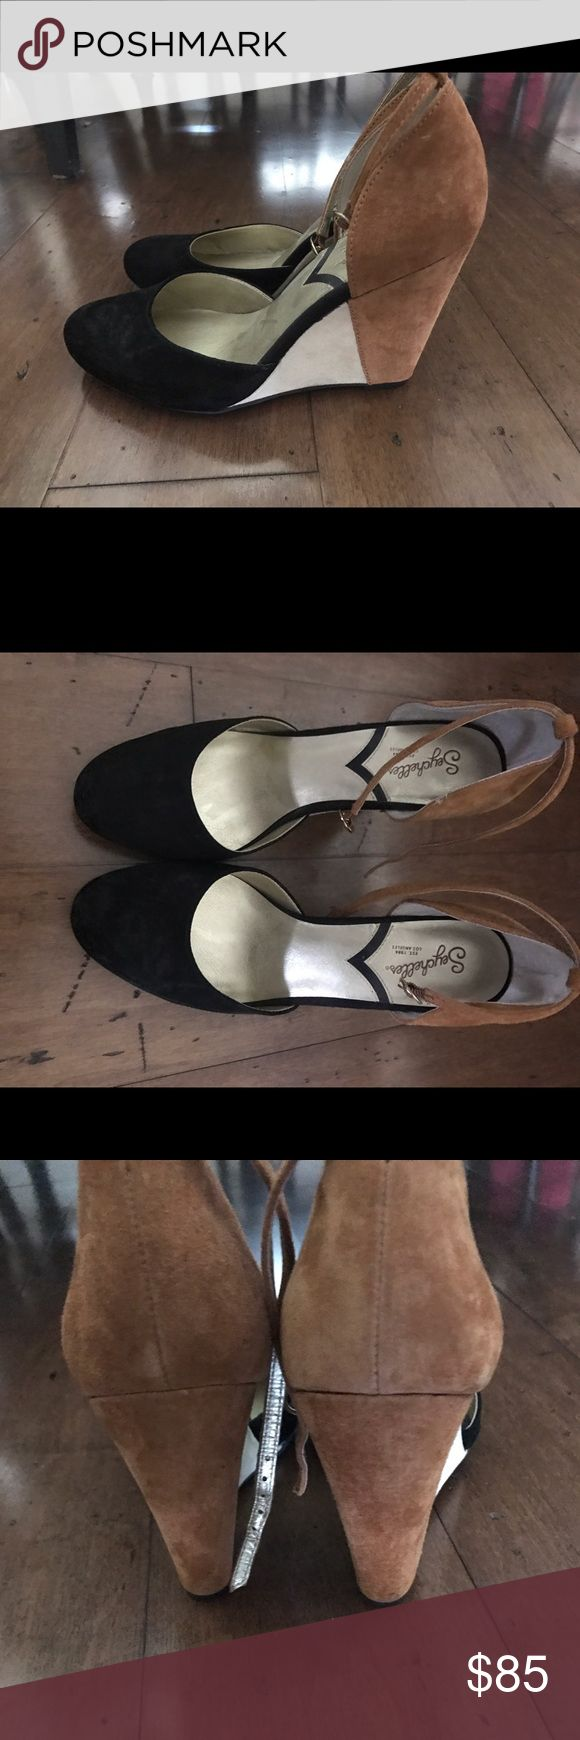 Seychelles wedges Size 8, Seychelles wedges, only worn once! Seychelles Shoes Wedges